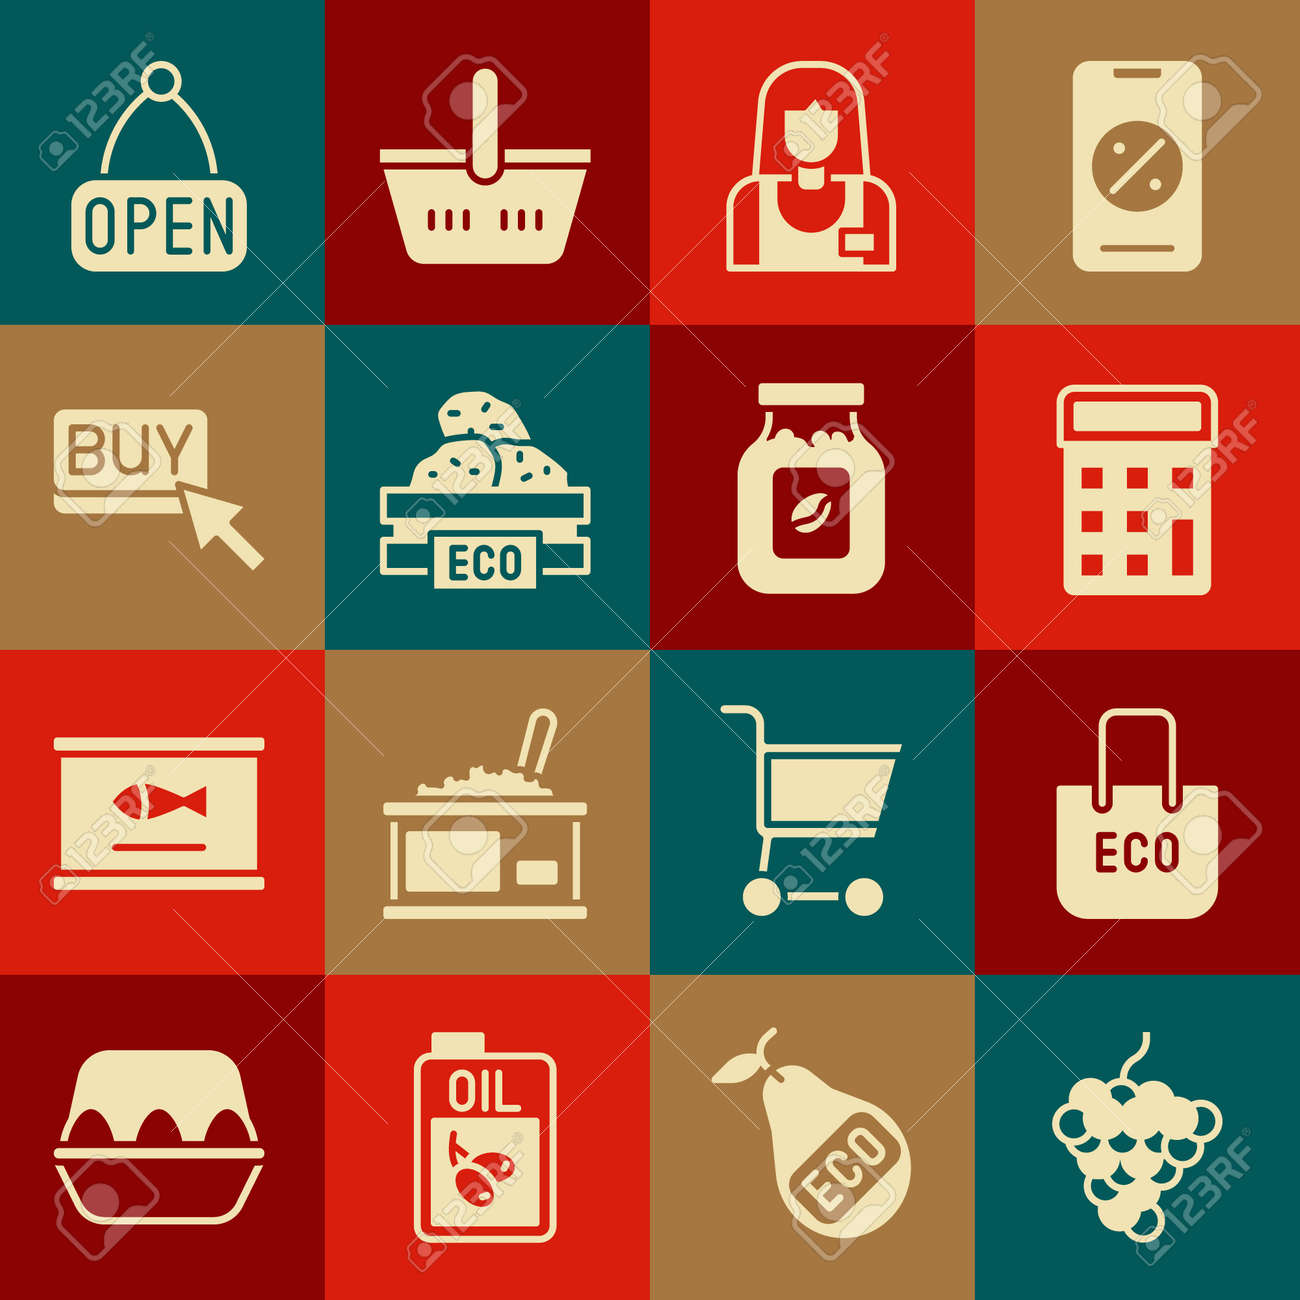 Set Grape fruit, Shopping bag with recycle, Calculator, Seller, Wooden box for fruits, Buy button, Hanging sign Open and Coffee jar bottle icon. Vector - 173396252